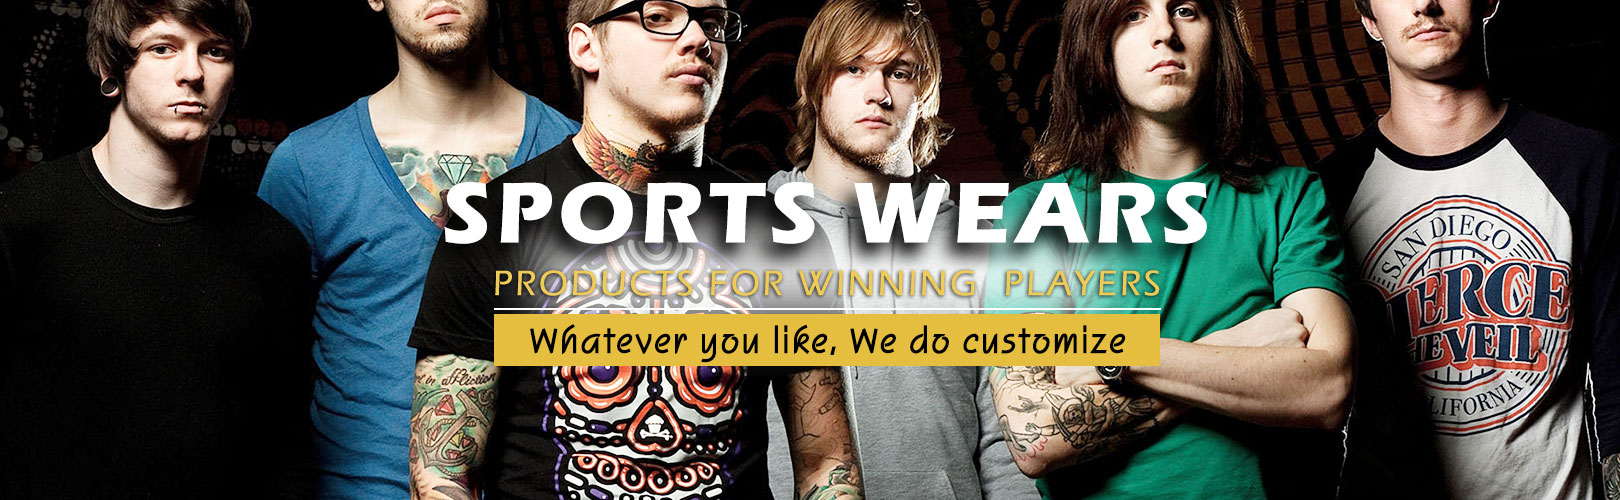 Manufacturers and Exporters of Customized Sports Wears